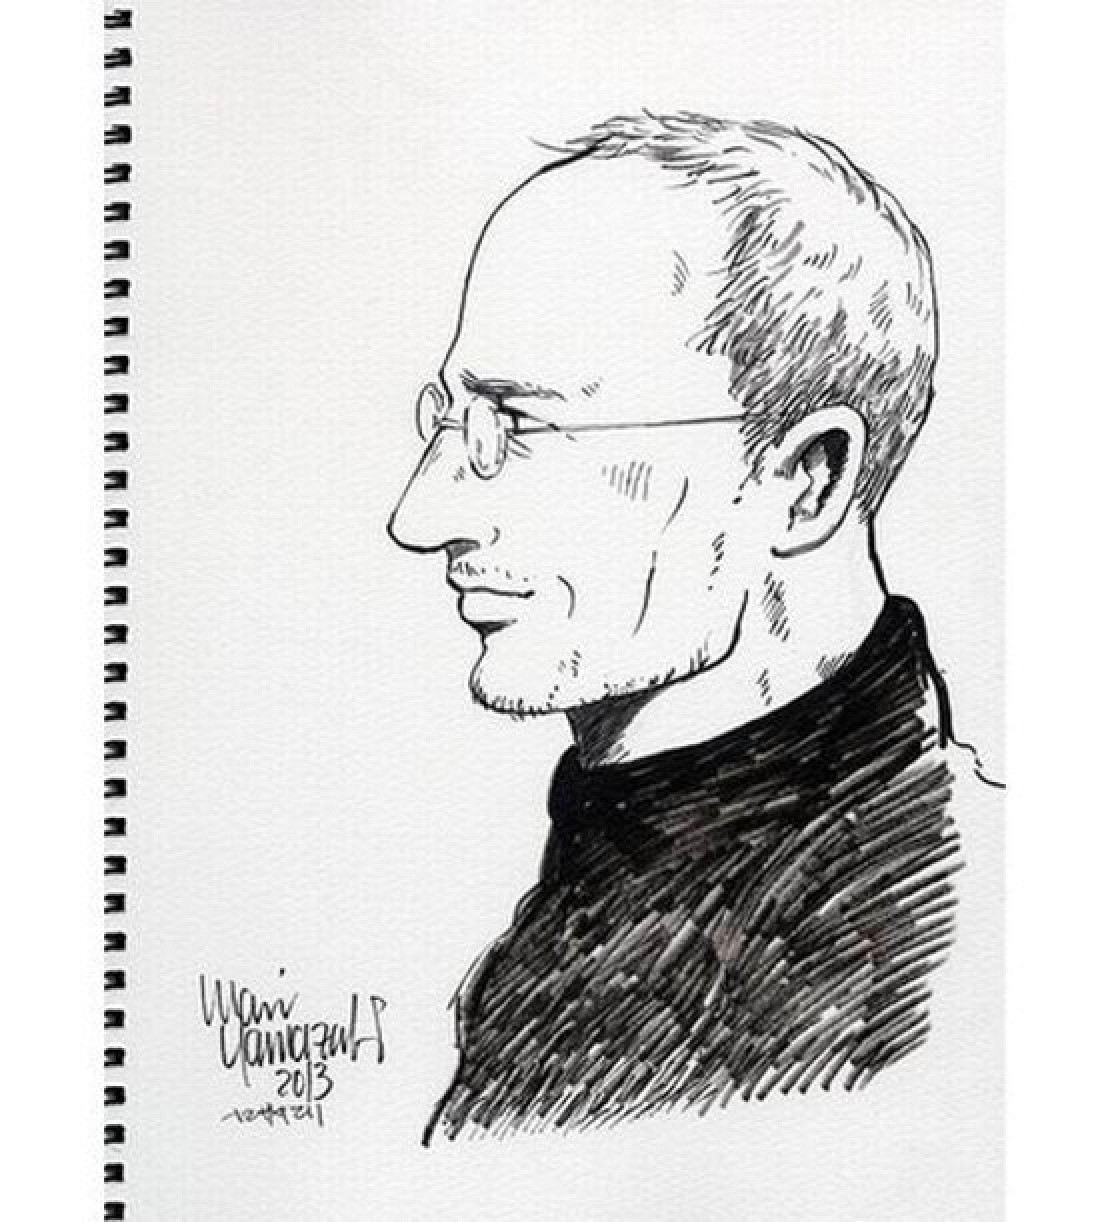 Steve Jobs to be Immortalized in Japanese Manga Series